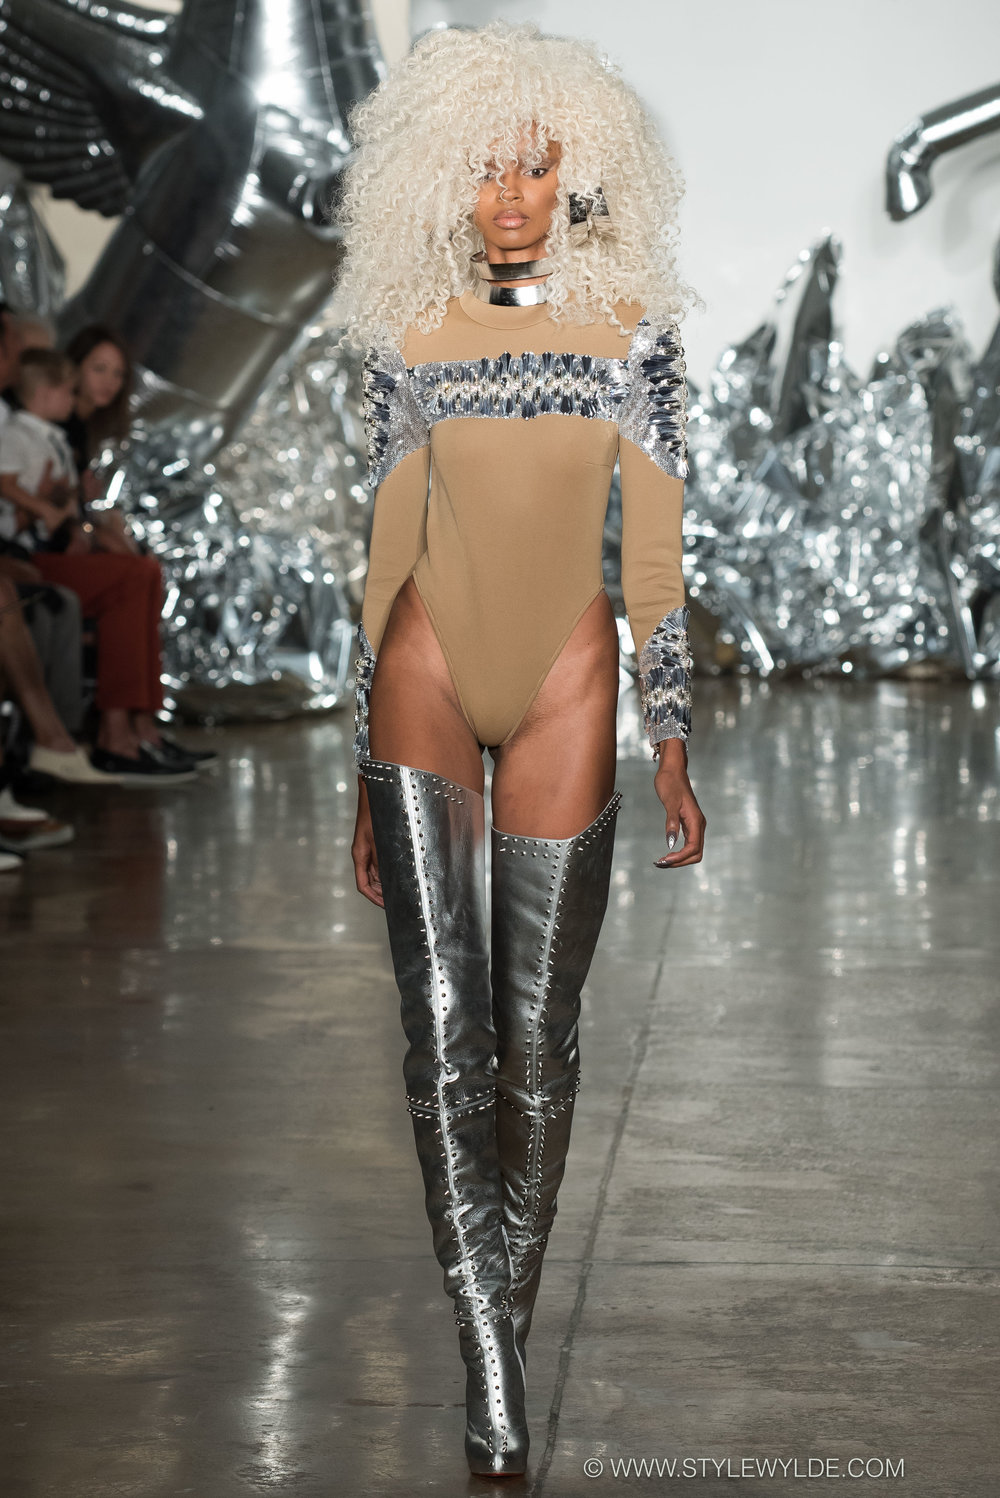 stylewylde-The Blonds SS17-FOH- Edits-14.jpg